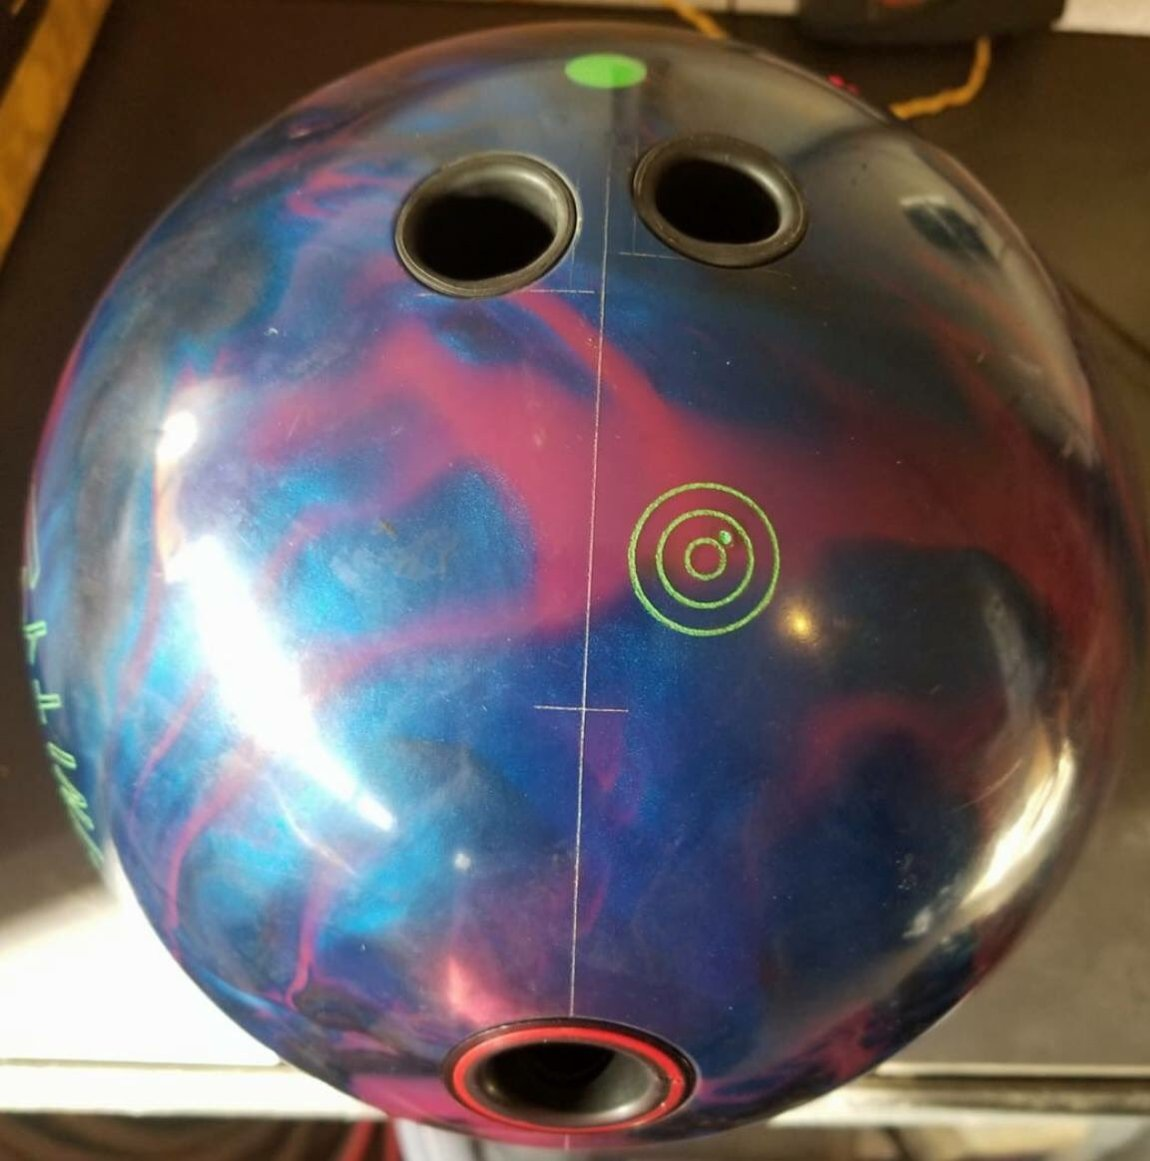 test Twitter Media - The Affinity features a brand new higher RG core that is designed to give effortless length through the front of the lane on medium conditions with a strong down lane motion. Drill one up today! #Ebonite #Affinity https://t.co/cBojjNqsKm